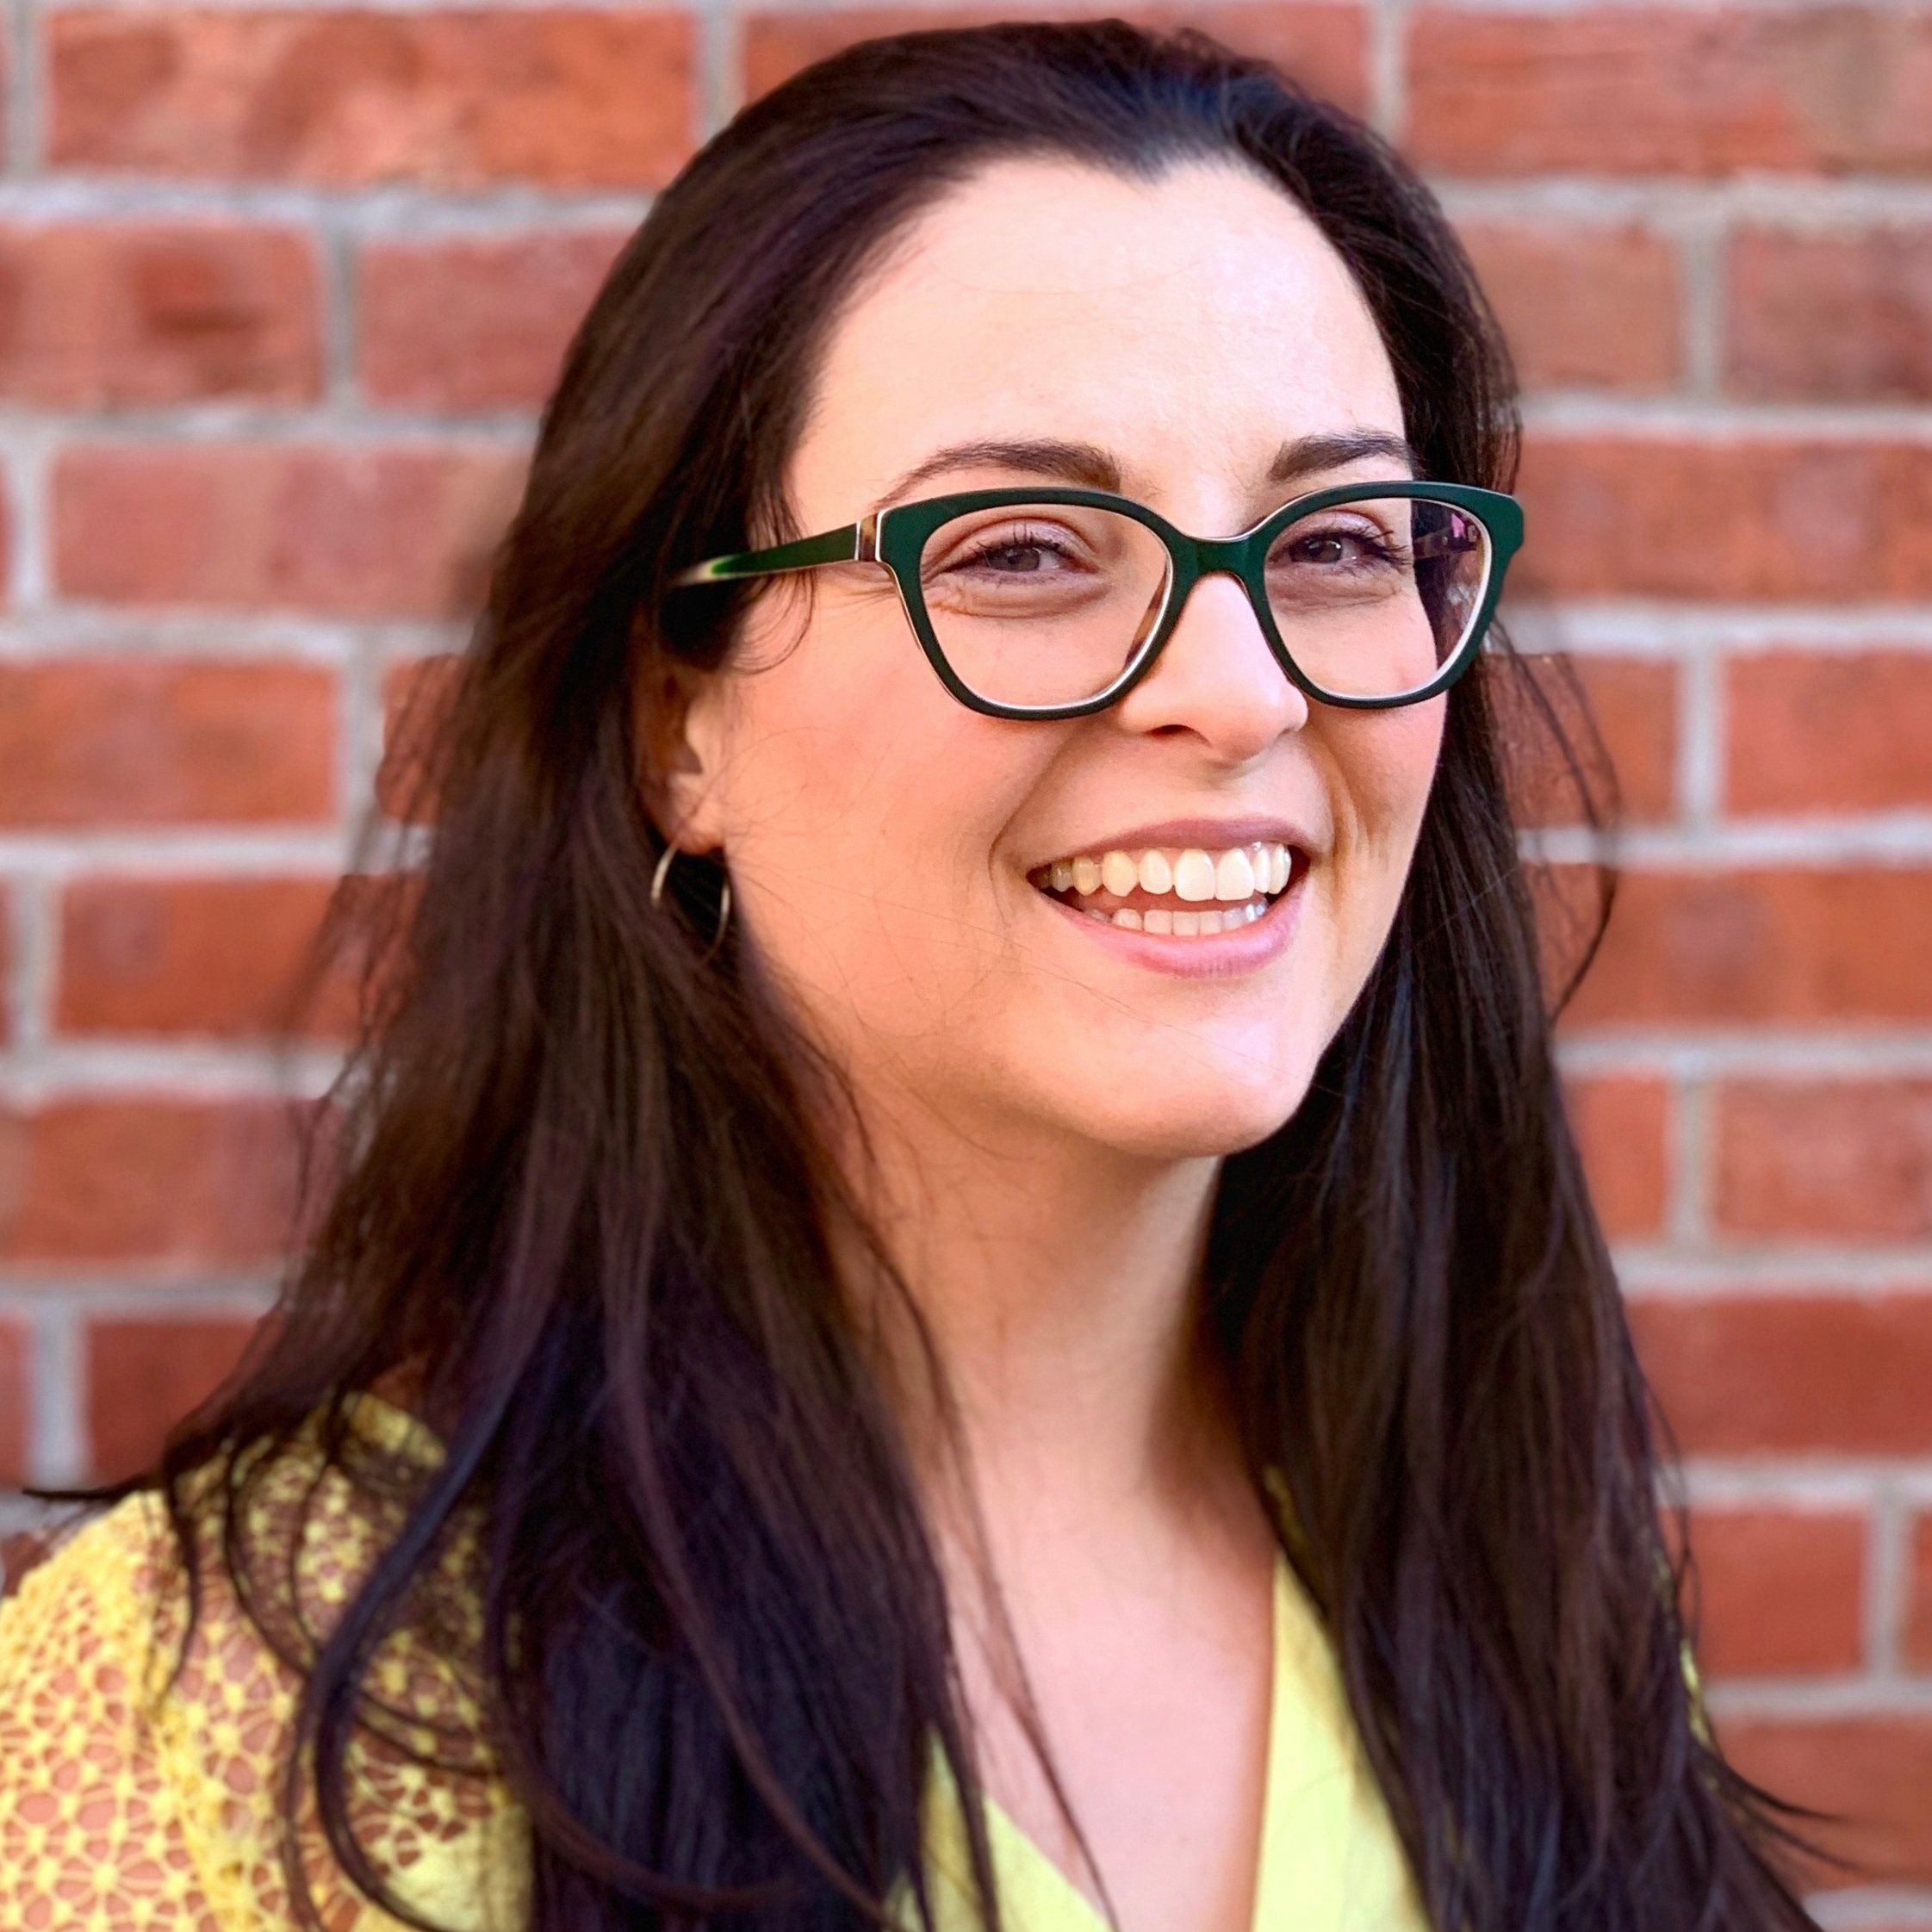 Jen Stevenson Zepeda, Director of Research & Operations  Education: Master of Design Studies, Boston Architectural College '16 and B.A. in Anthropology/Sociology & Spanish, Middlebury College '03 Hometown: Vassalboro, Maine Best thing you've read recently: Cadillac Desert by Marc Reisner Favorite place in Boston: Harbor Islands